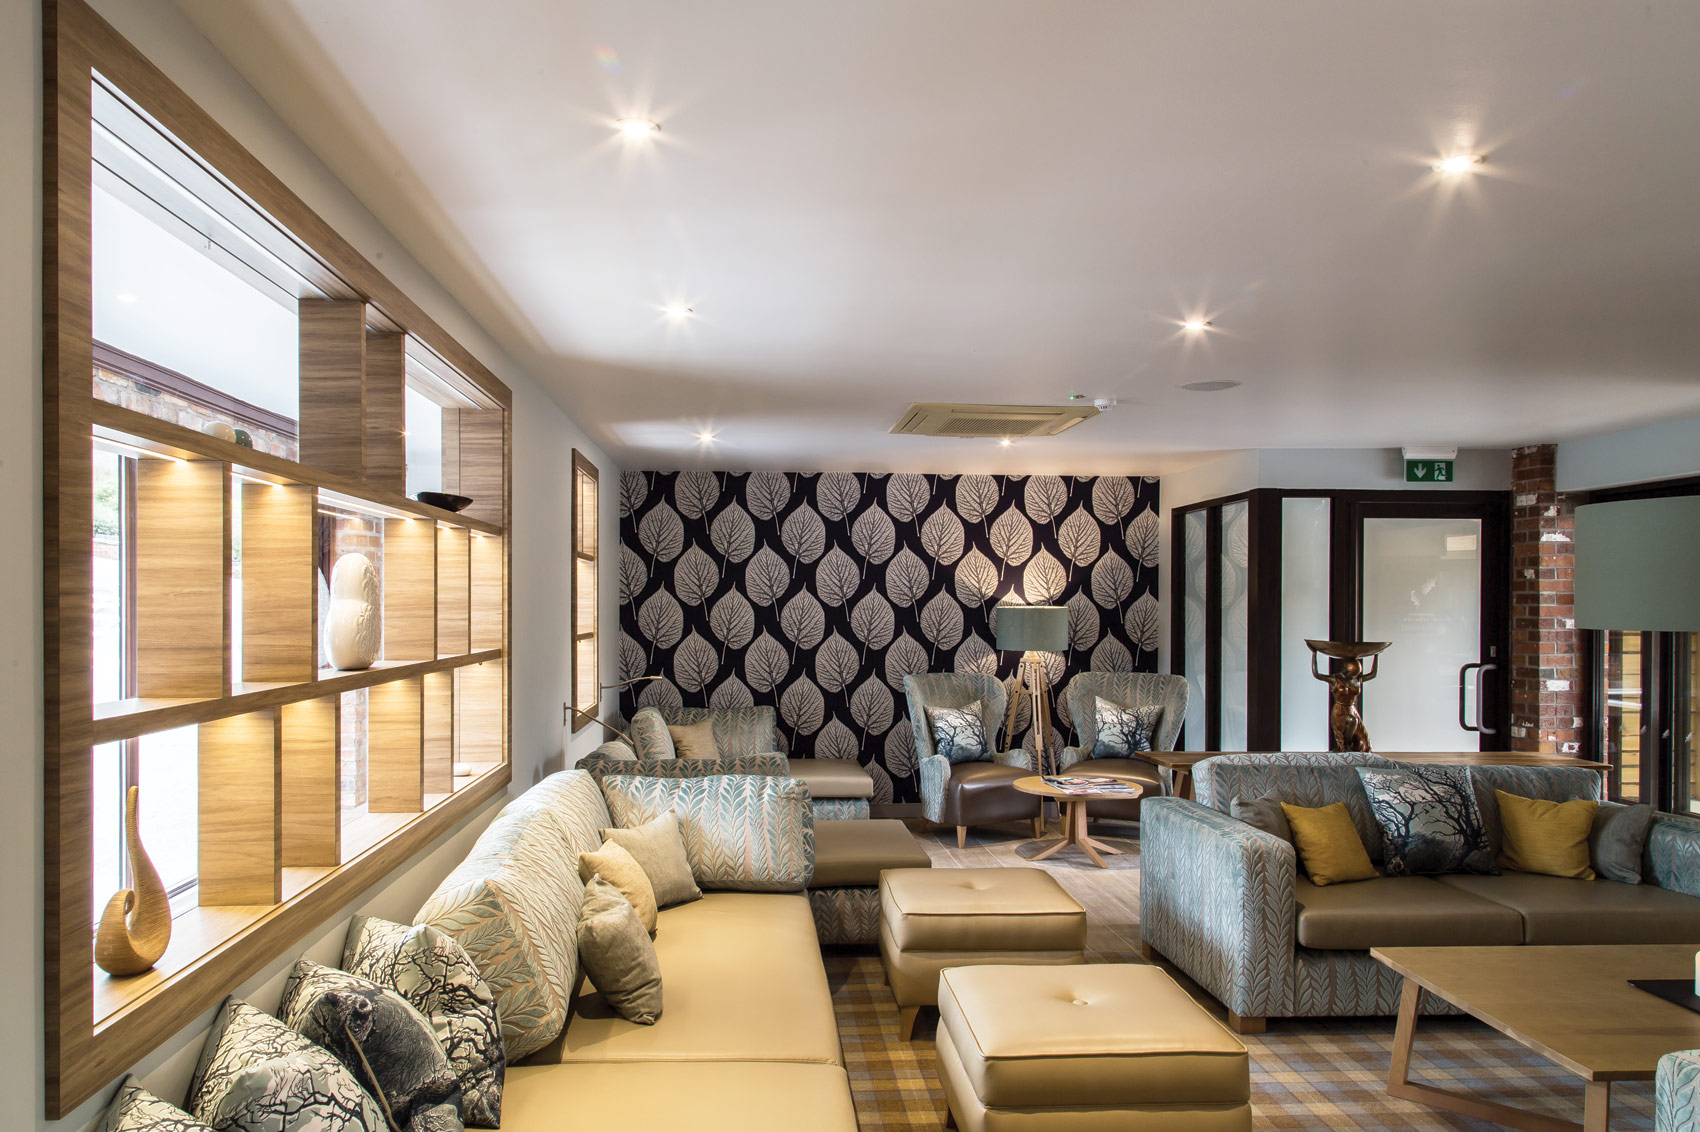 A Winter Treat Spa-cation At Staffordshire's Moddershall Oaks 3